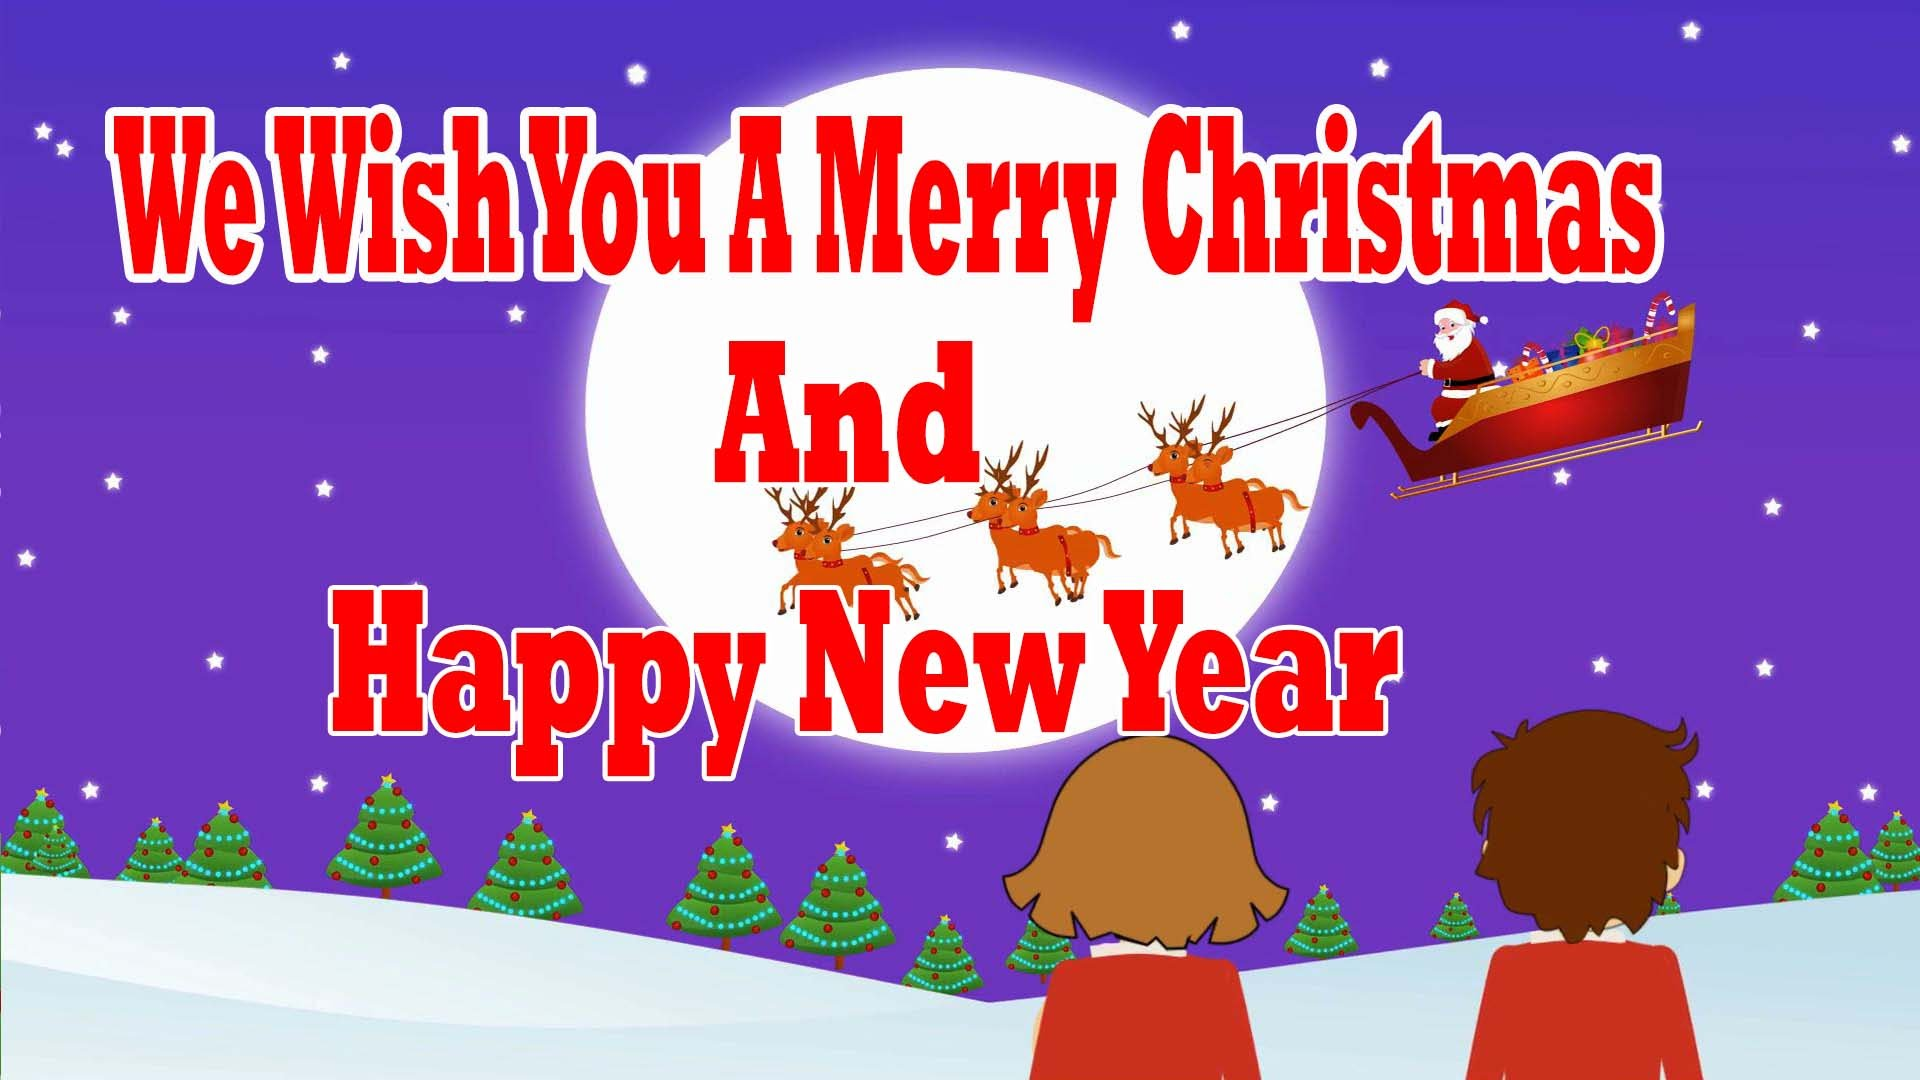 merry christmas and happy new year 2019 merry christmas - Merry Merry Merry Christmas